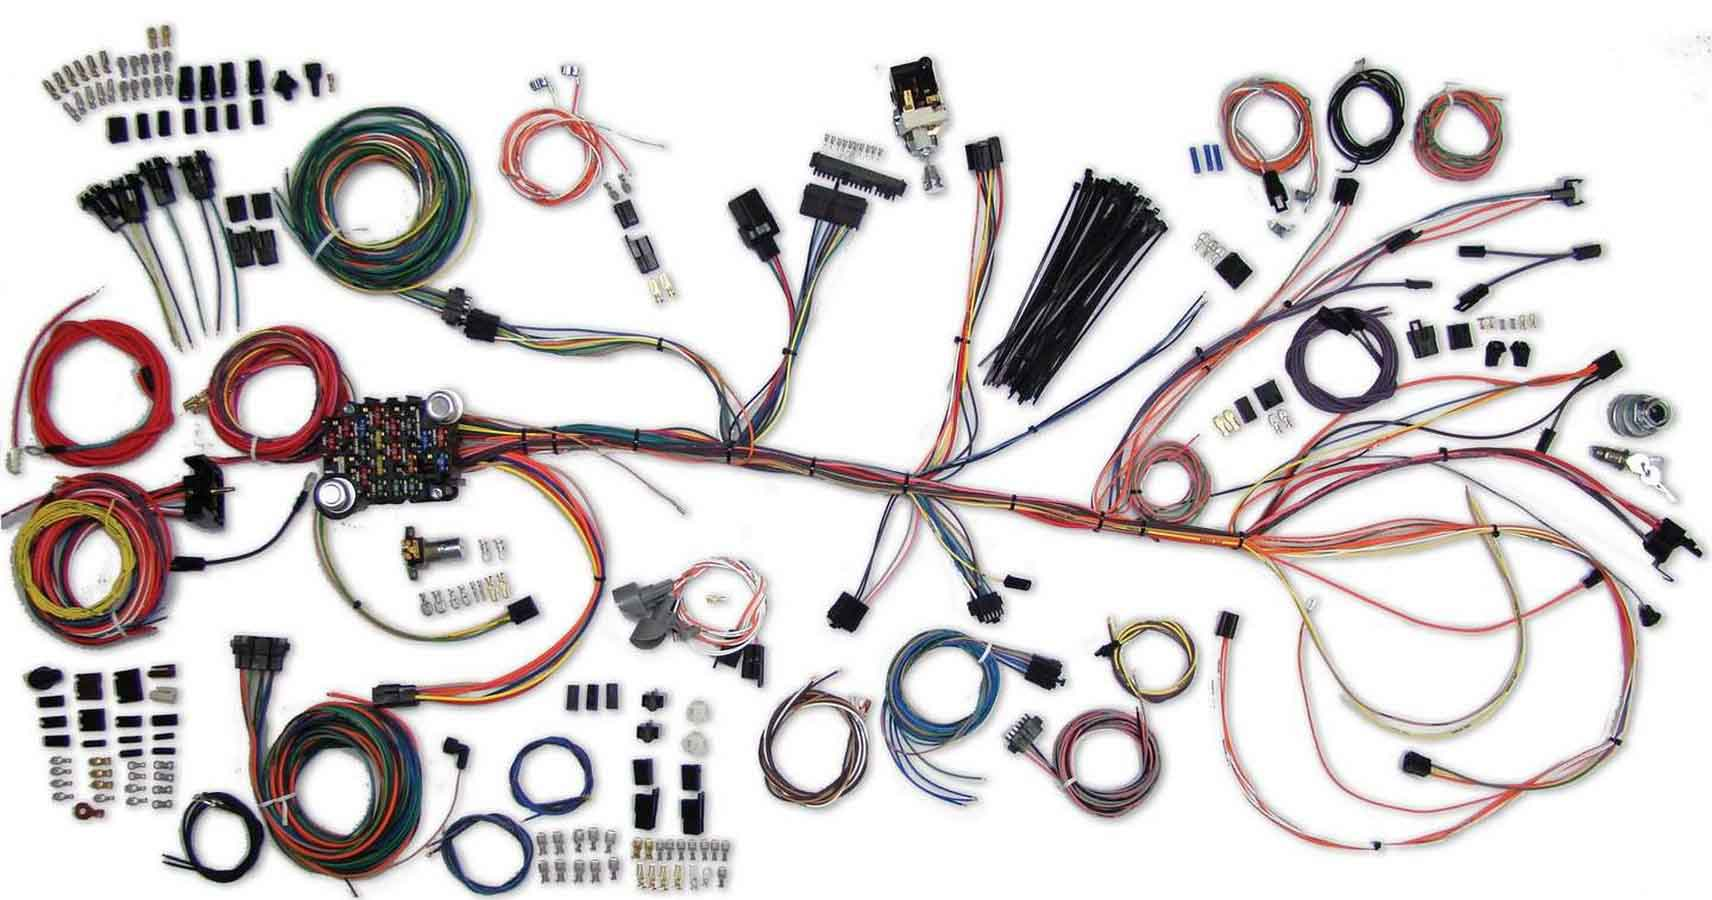 Shop For Full Wiring Harness Application Specific Car Kits 64 67 Chevelle Wire System